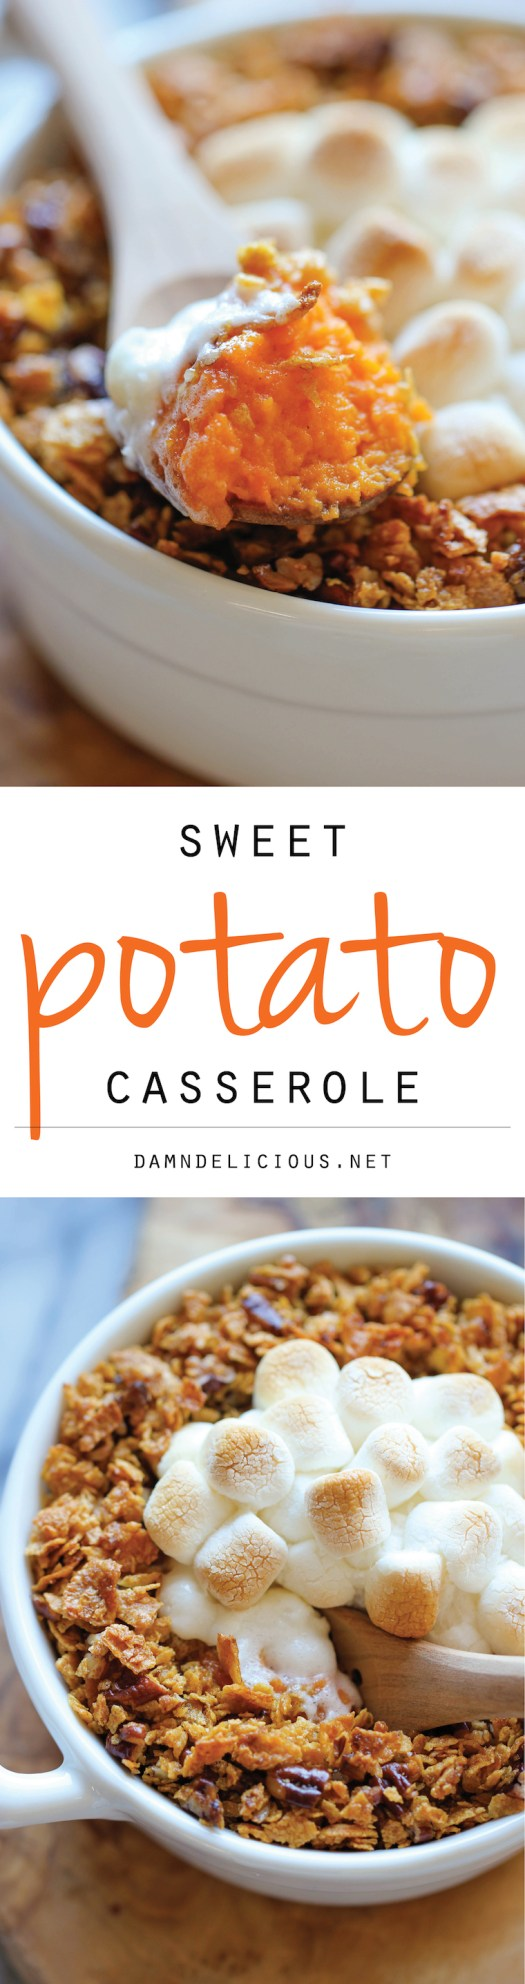 Sweet Potato Casserole-Made with mashed roasted sweet potatoes and a crunchy pecan topping with an ooey gooey melted marshmallow center!